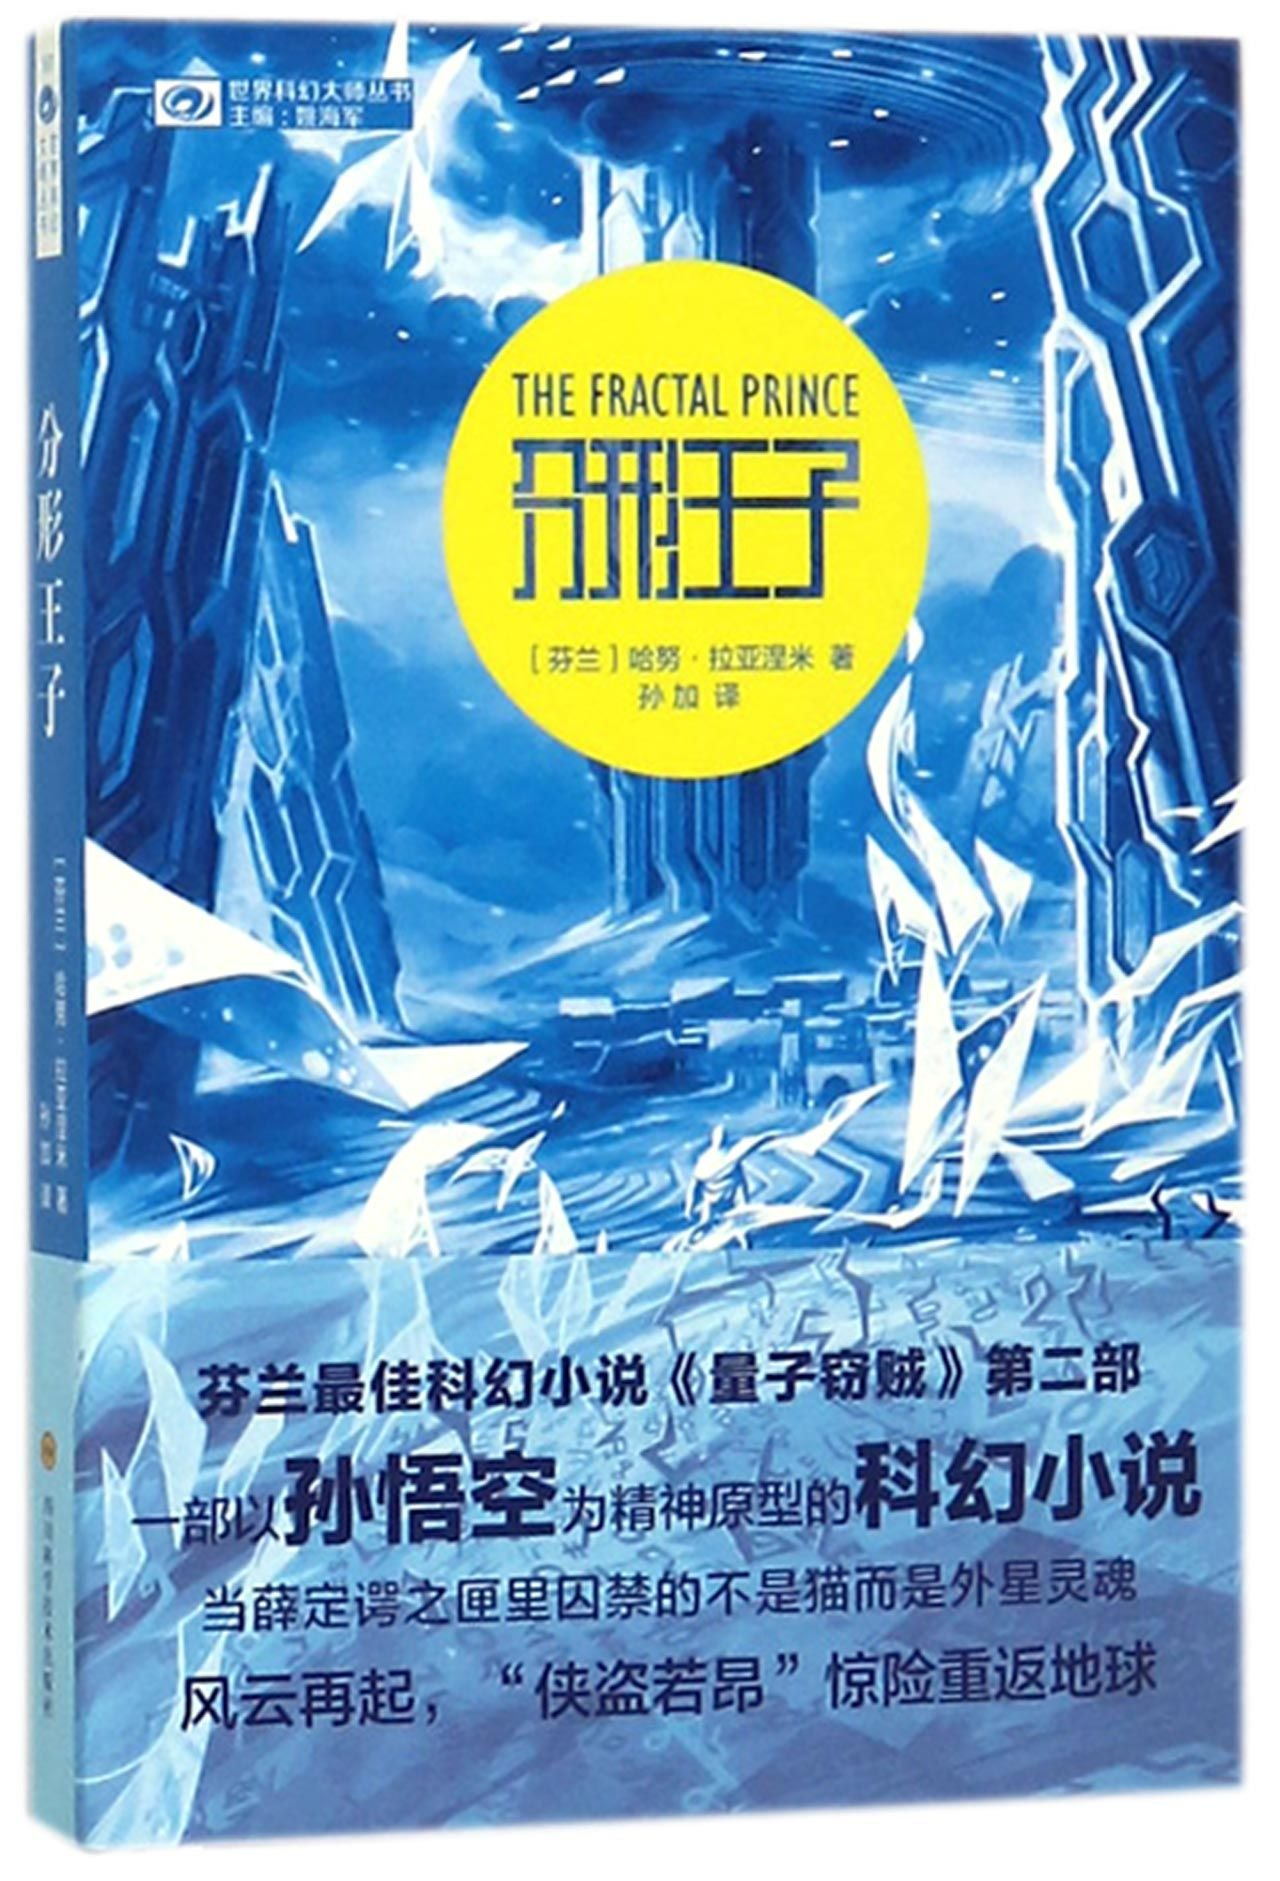 The Fractal Prince (Chinese Edition) PDF